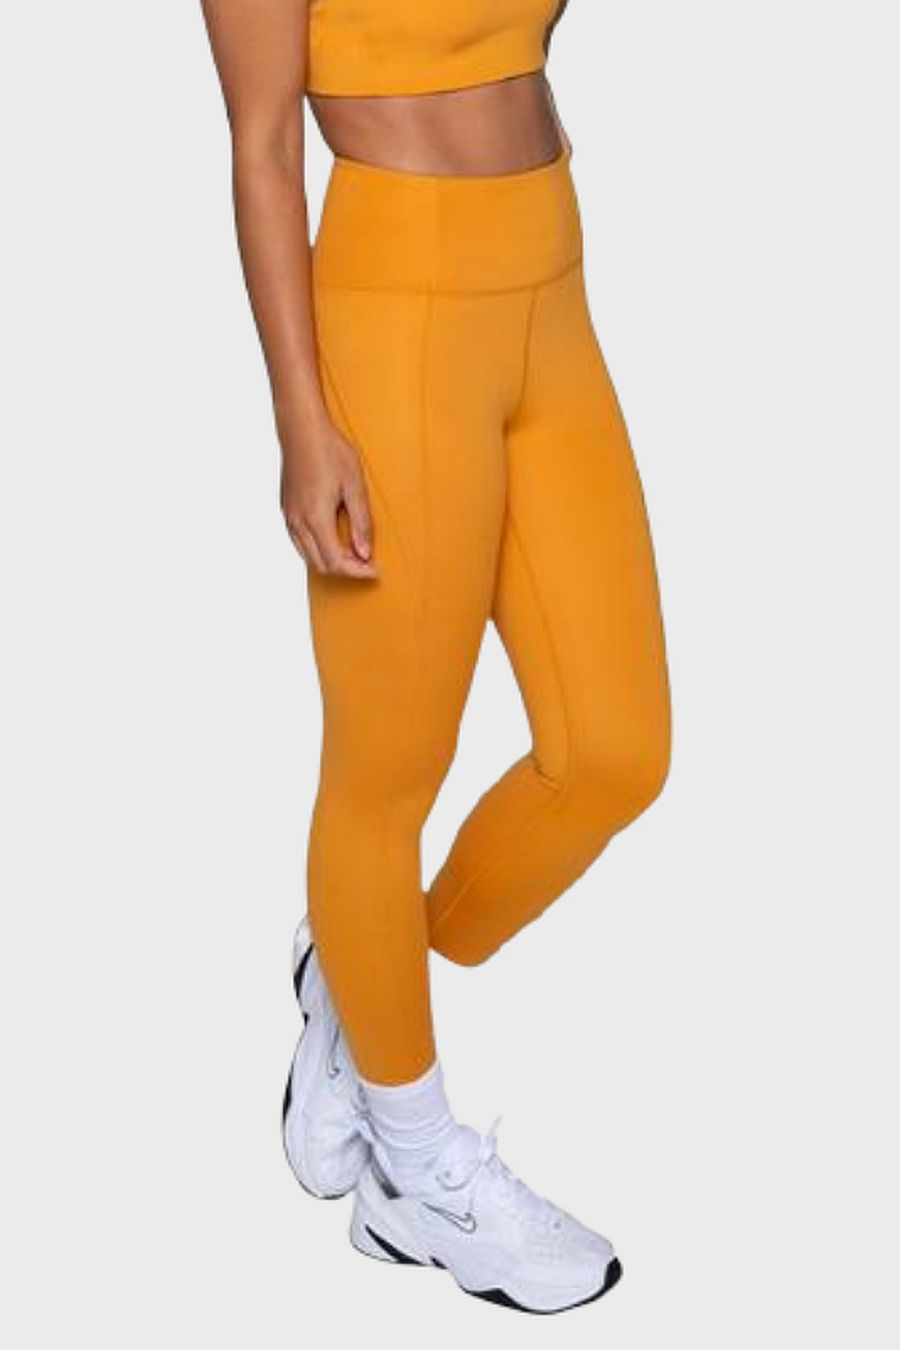 "Girlfriend Collective Honey Compressive Legging (28.5"")"